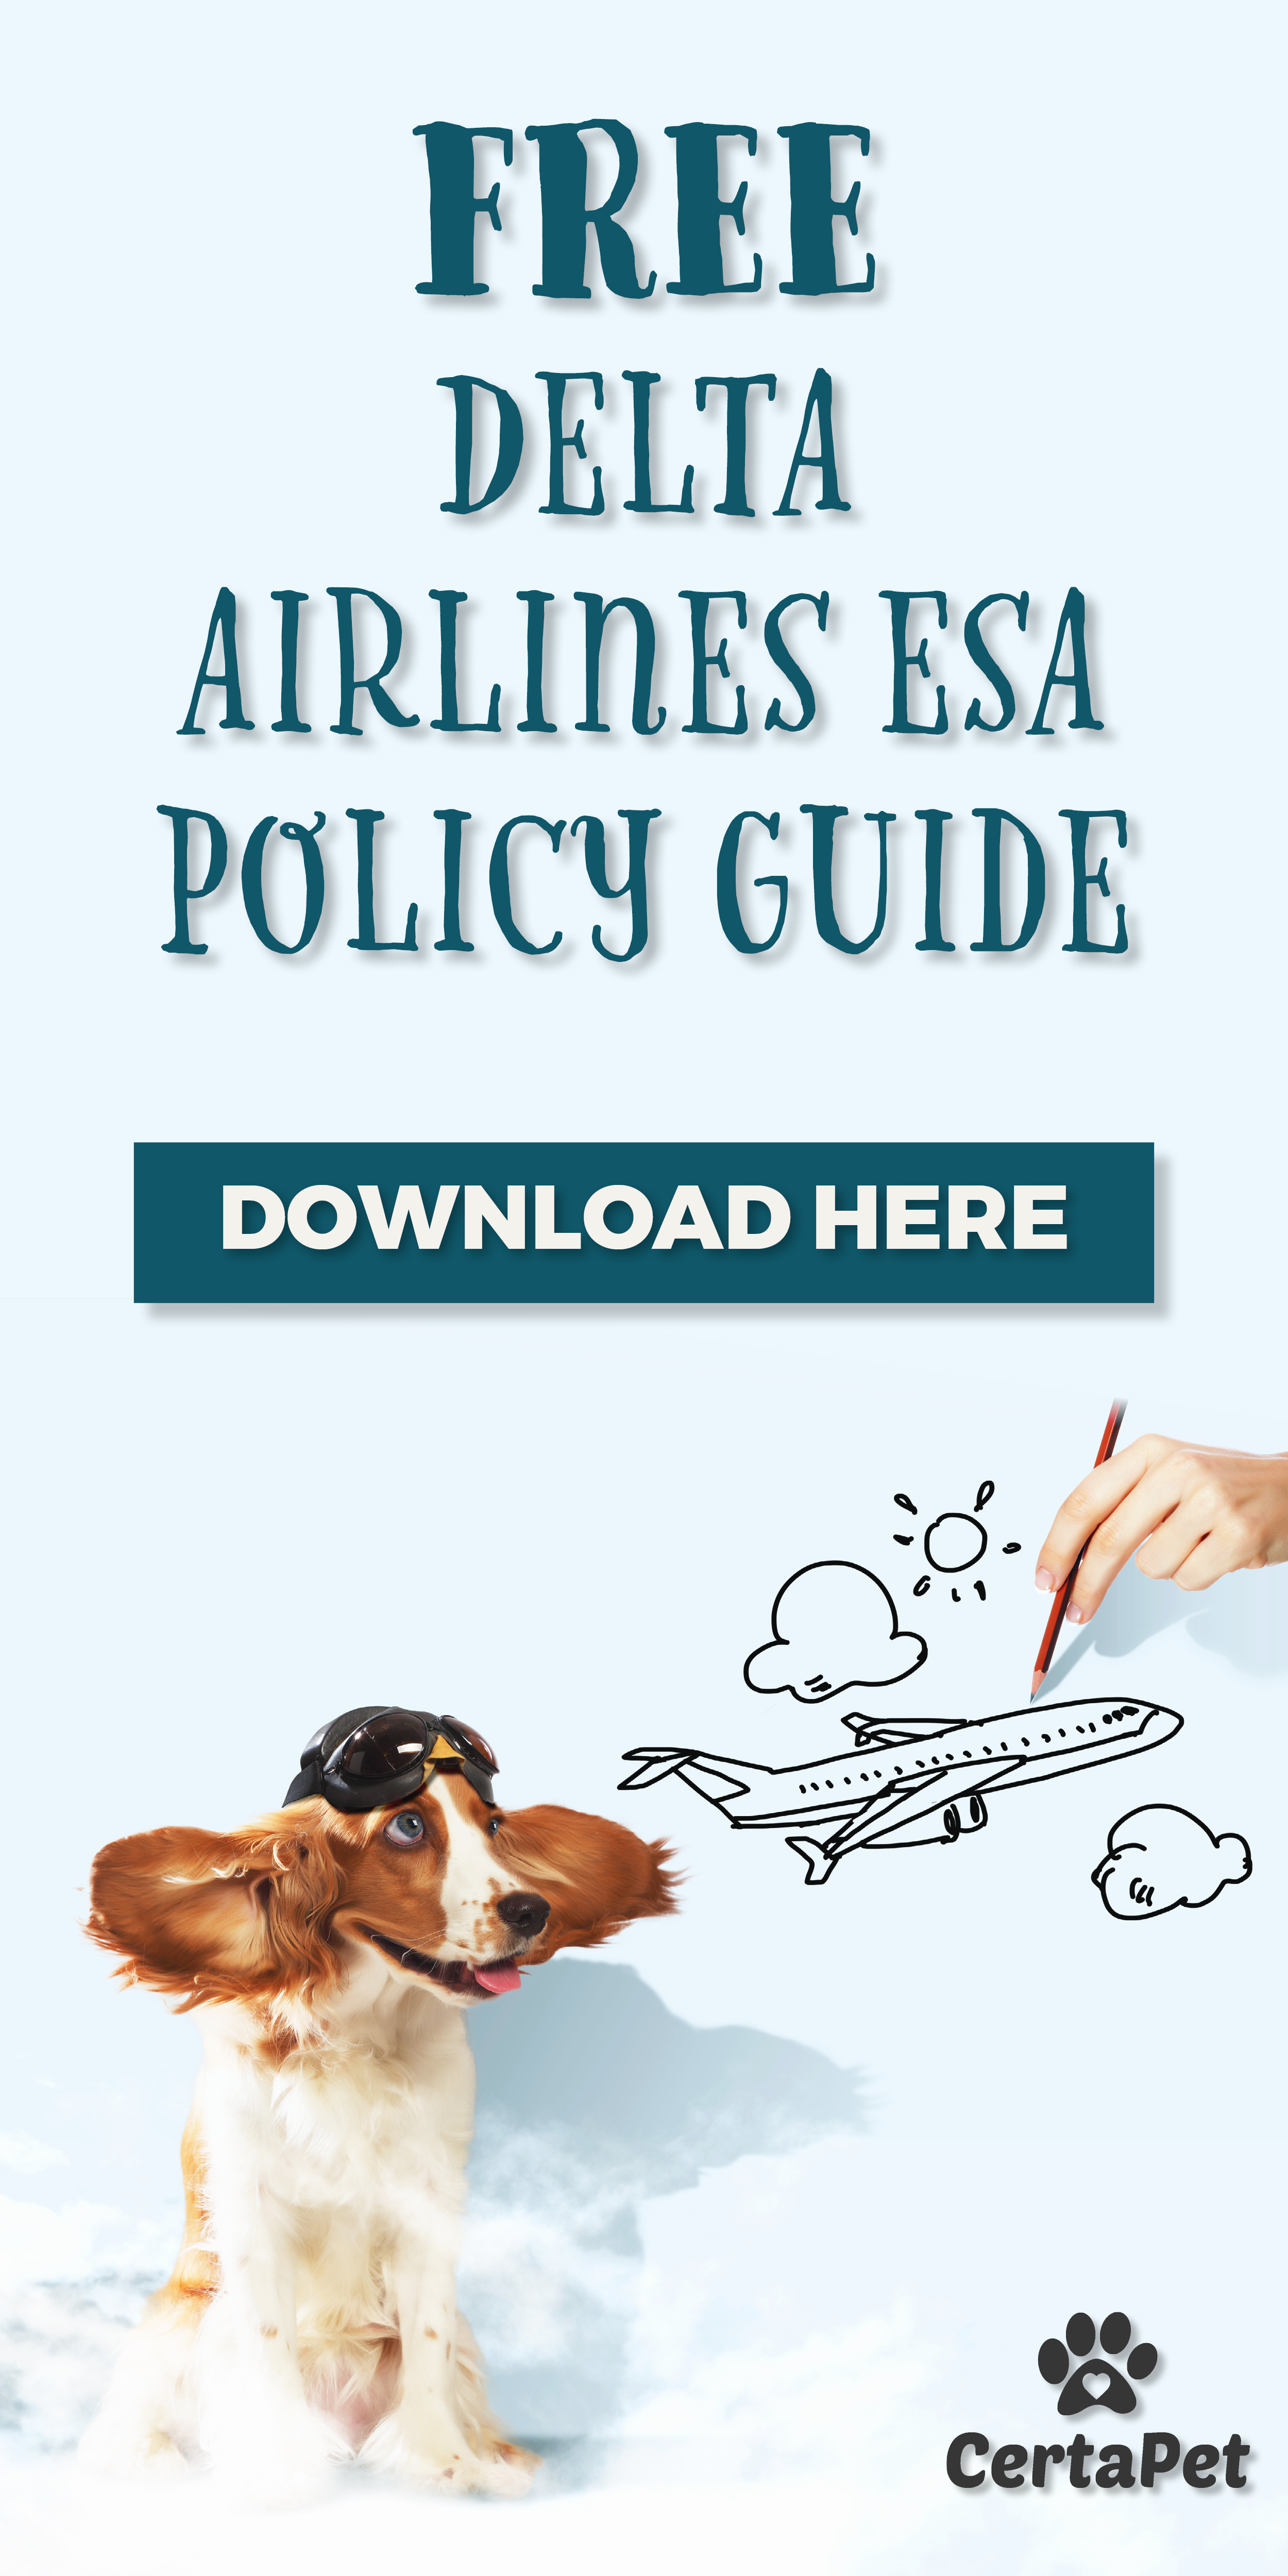 ATTENTION TRAVELERS! Planning on a trip with your pet or